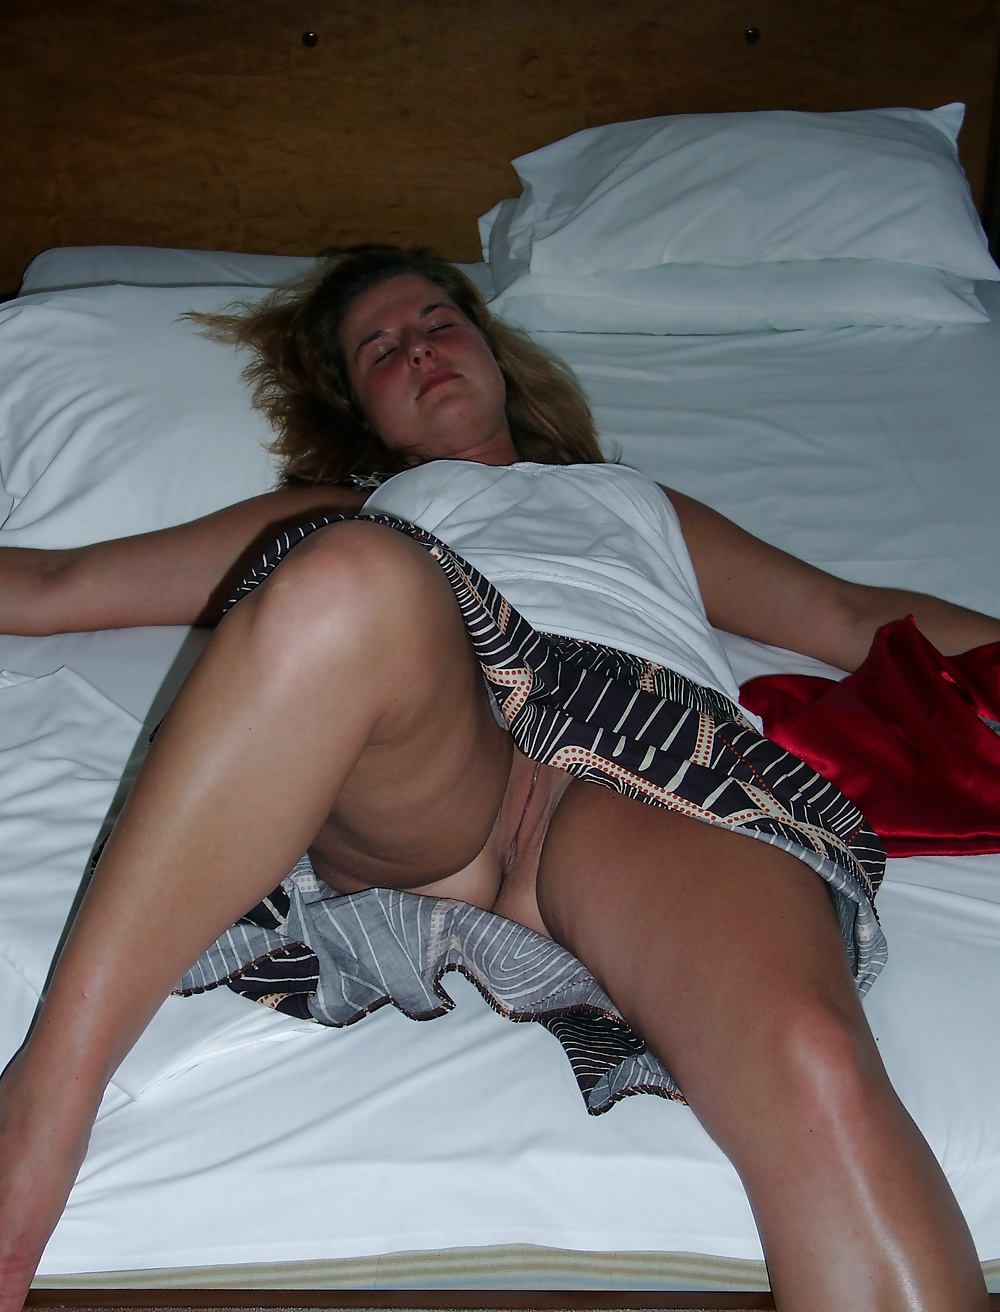 girls-asleep-in-skirts-porn